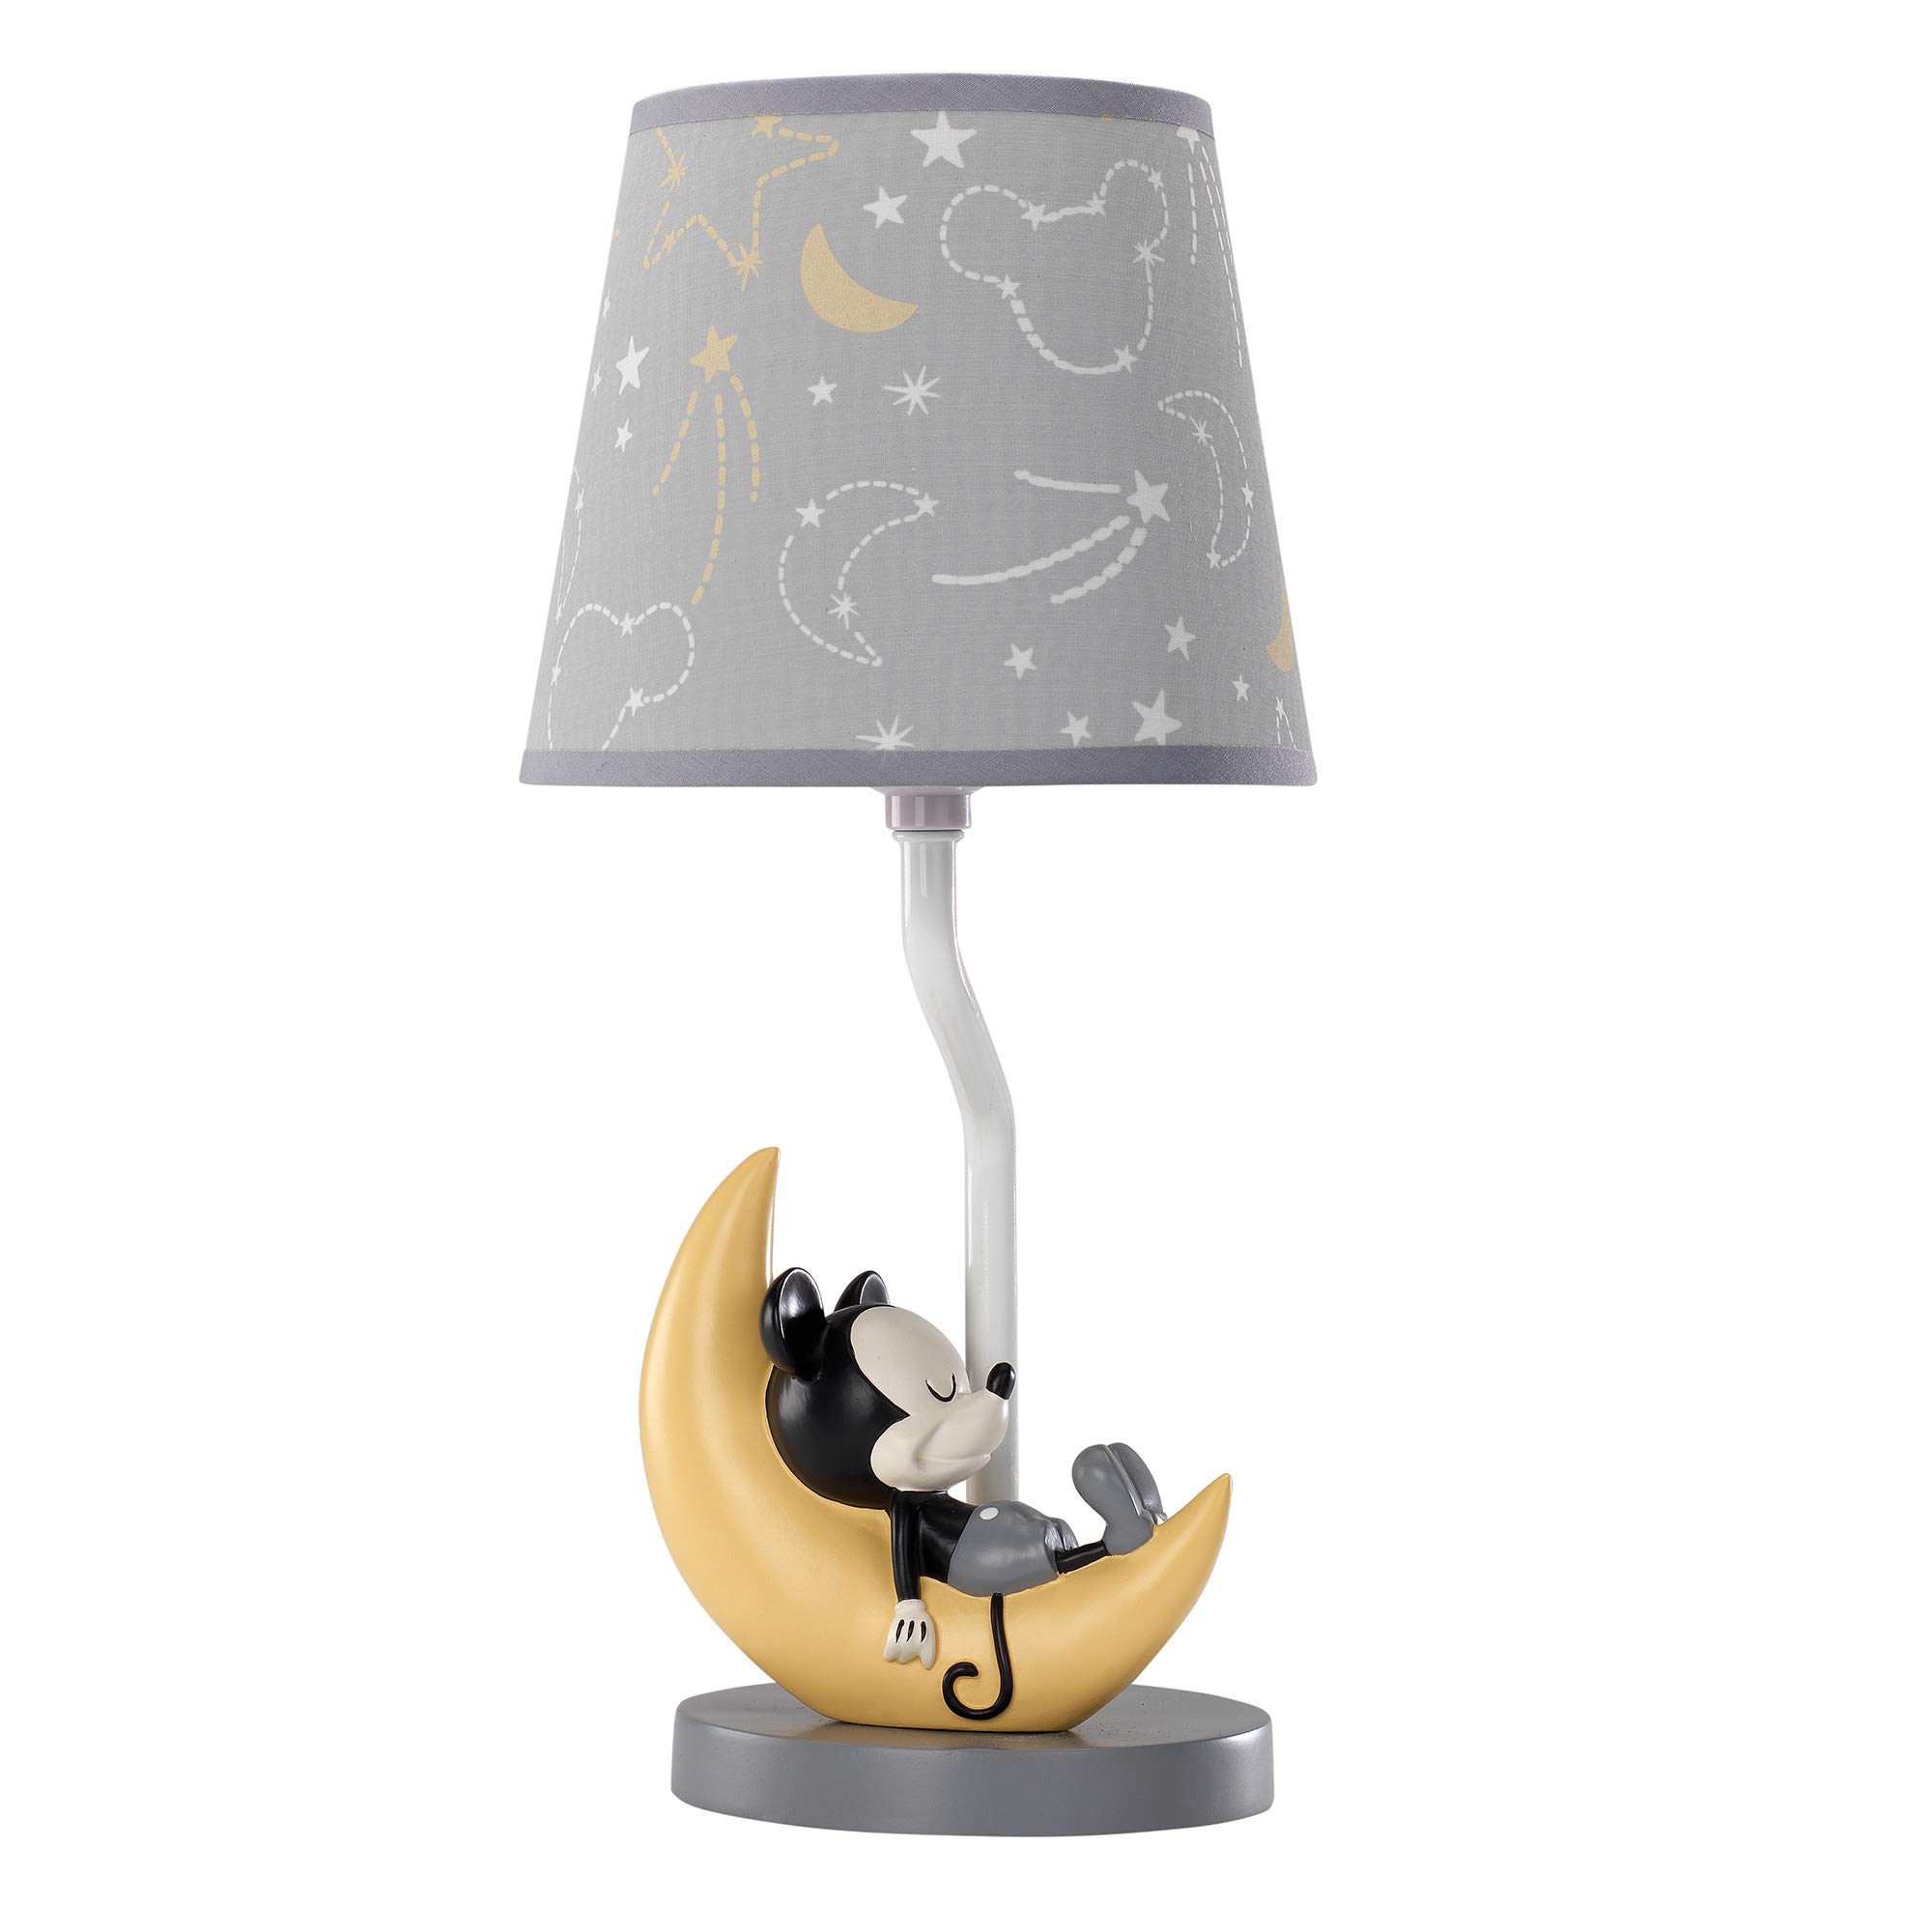 Lambs & Ivy Disney Baby Mickey Mouse Lamp with Shade & Bulb, Gray/Yellow by Lambs & Ivy